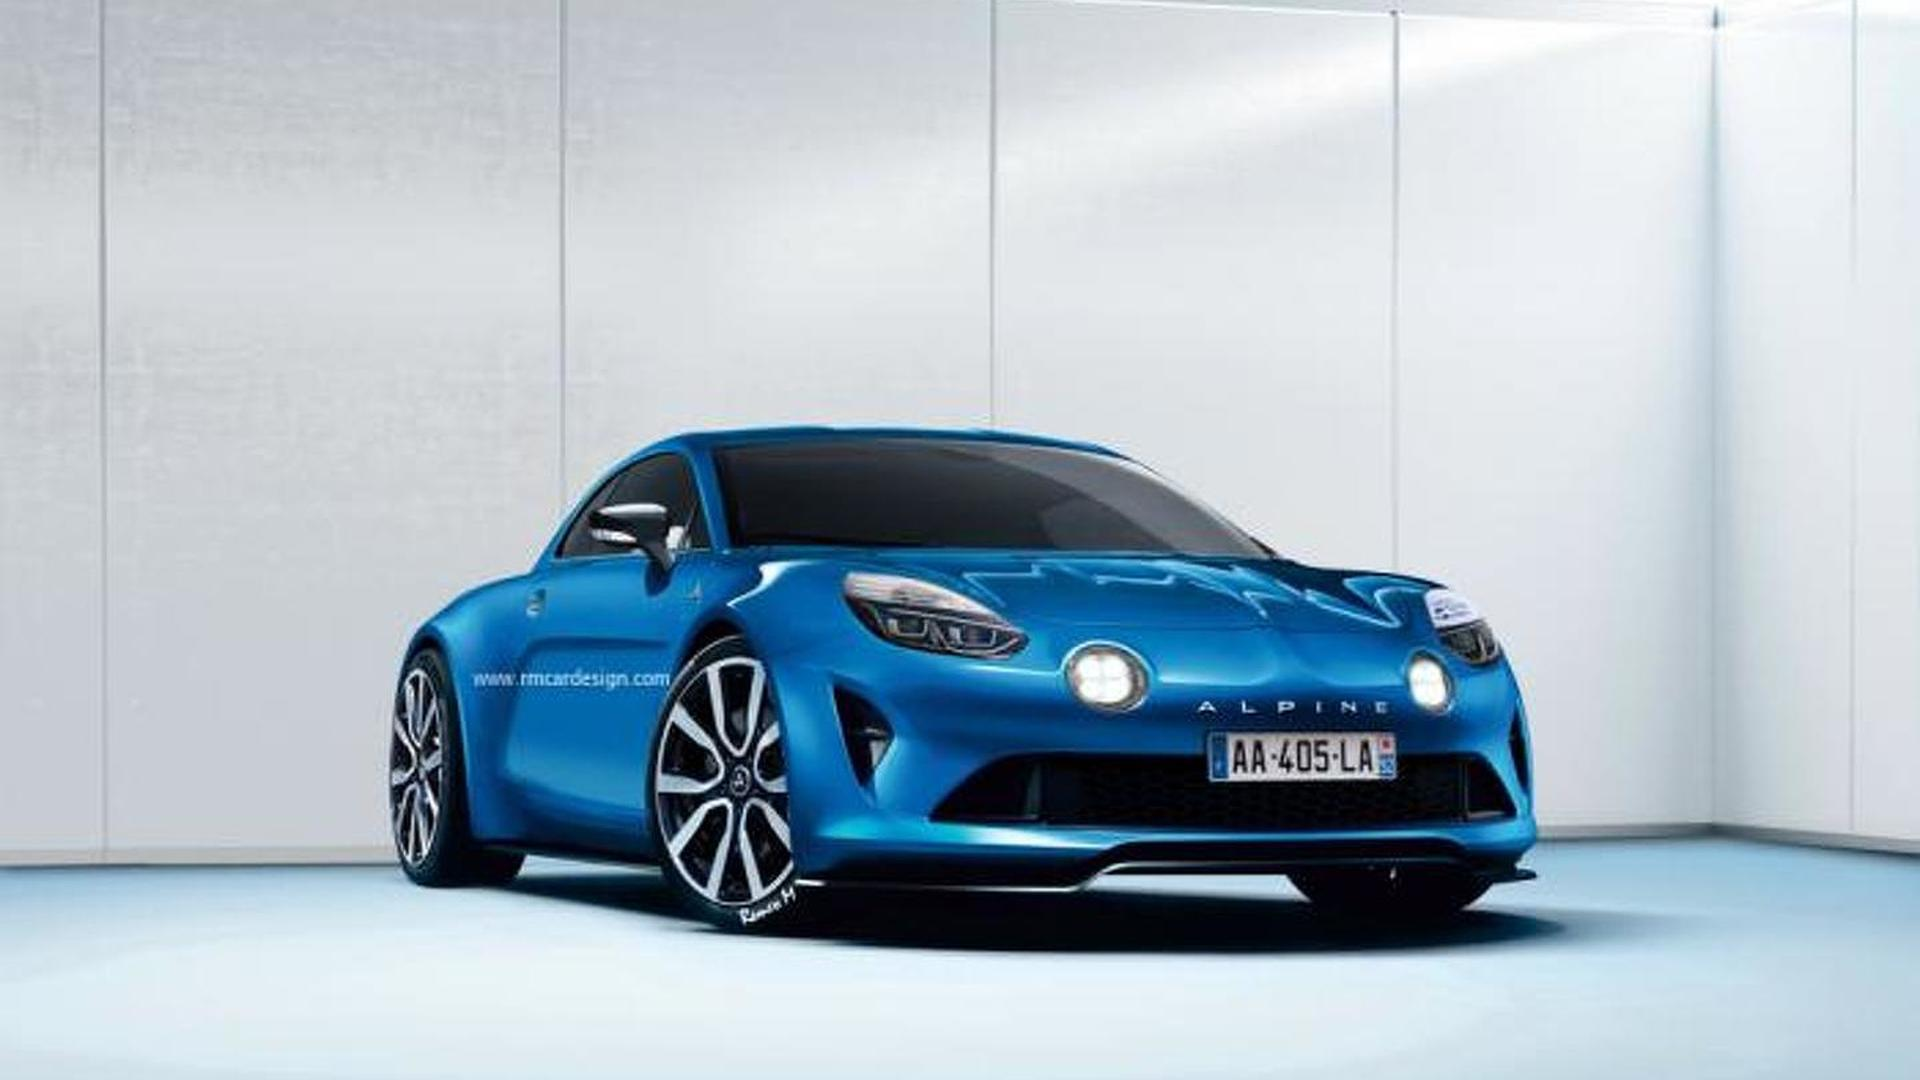 2016 Renault Alpine speculatively rendered based on Celebration concept